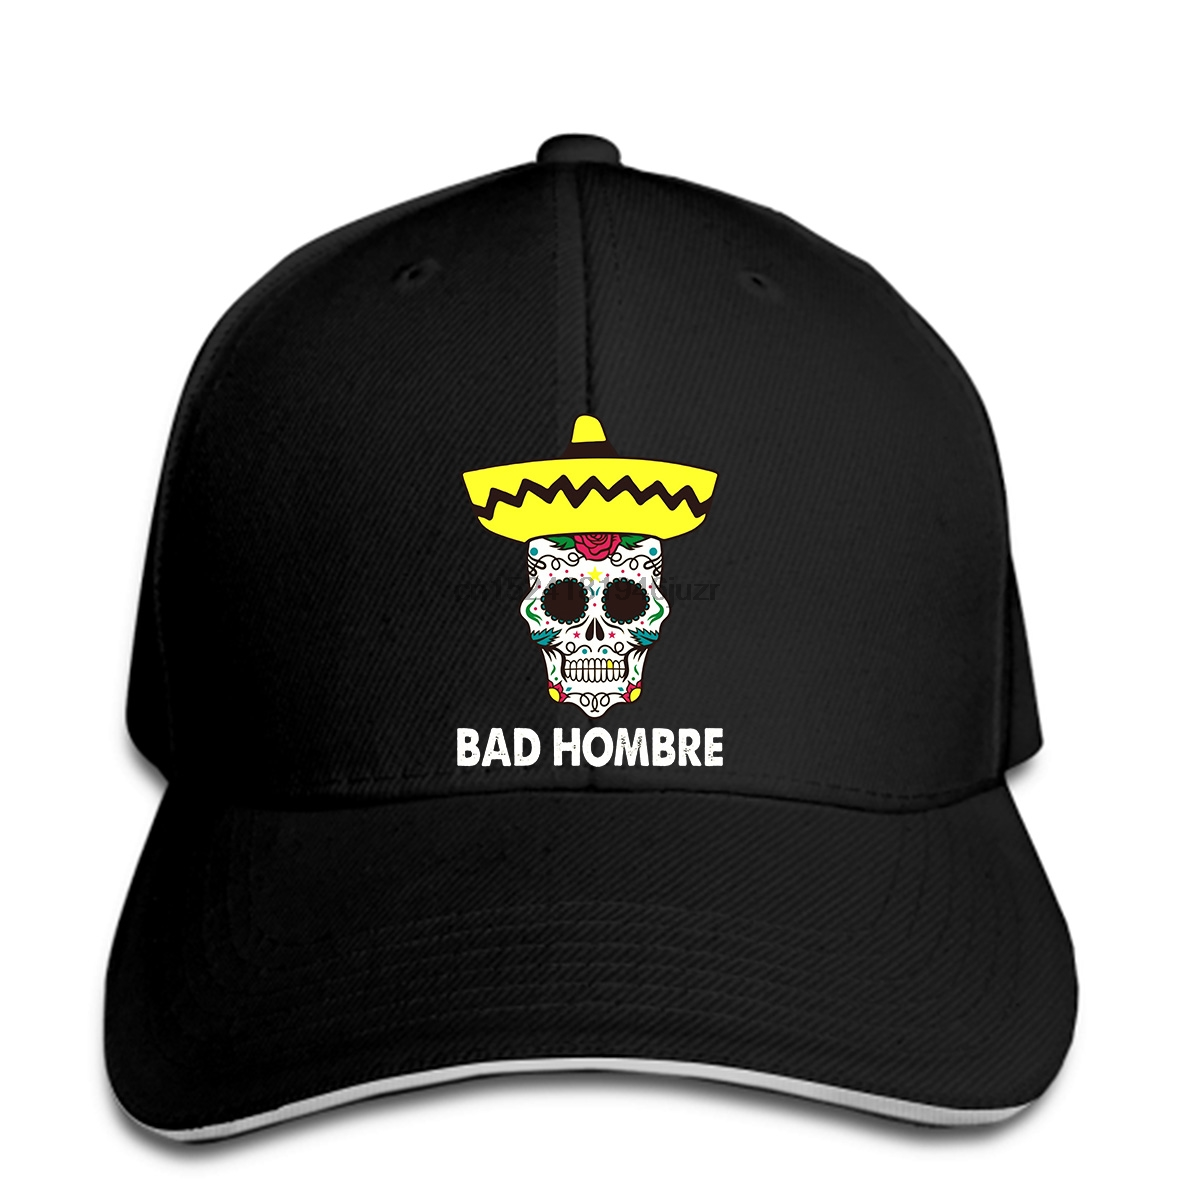 d12505561227a hip hop Baseball caps Bad Hombre Mexican Sugar Skull Men   High Quality  Custom Printed hat Hipster sMen Funny snapback-in Baseball Caps from  Apparel ...